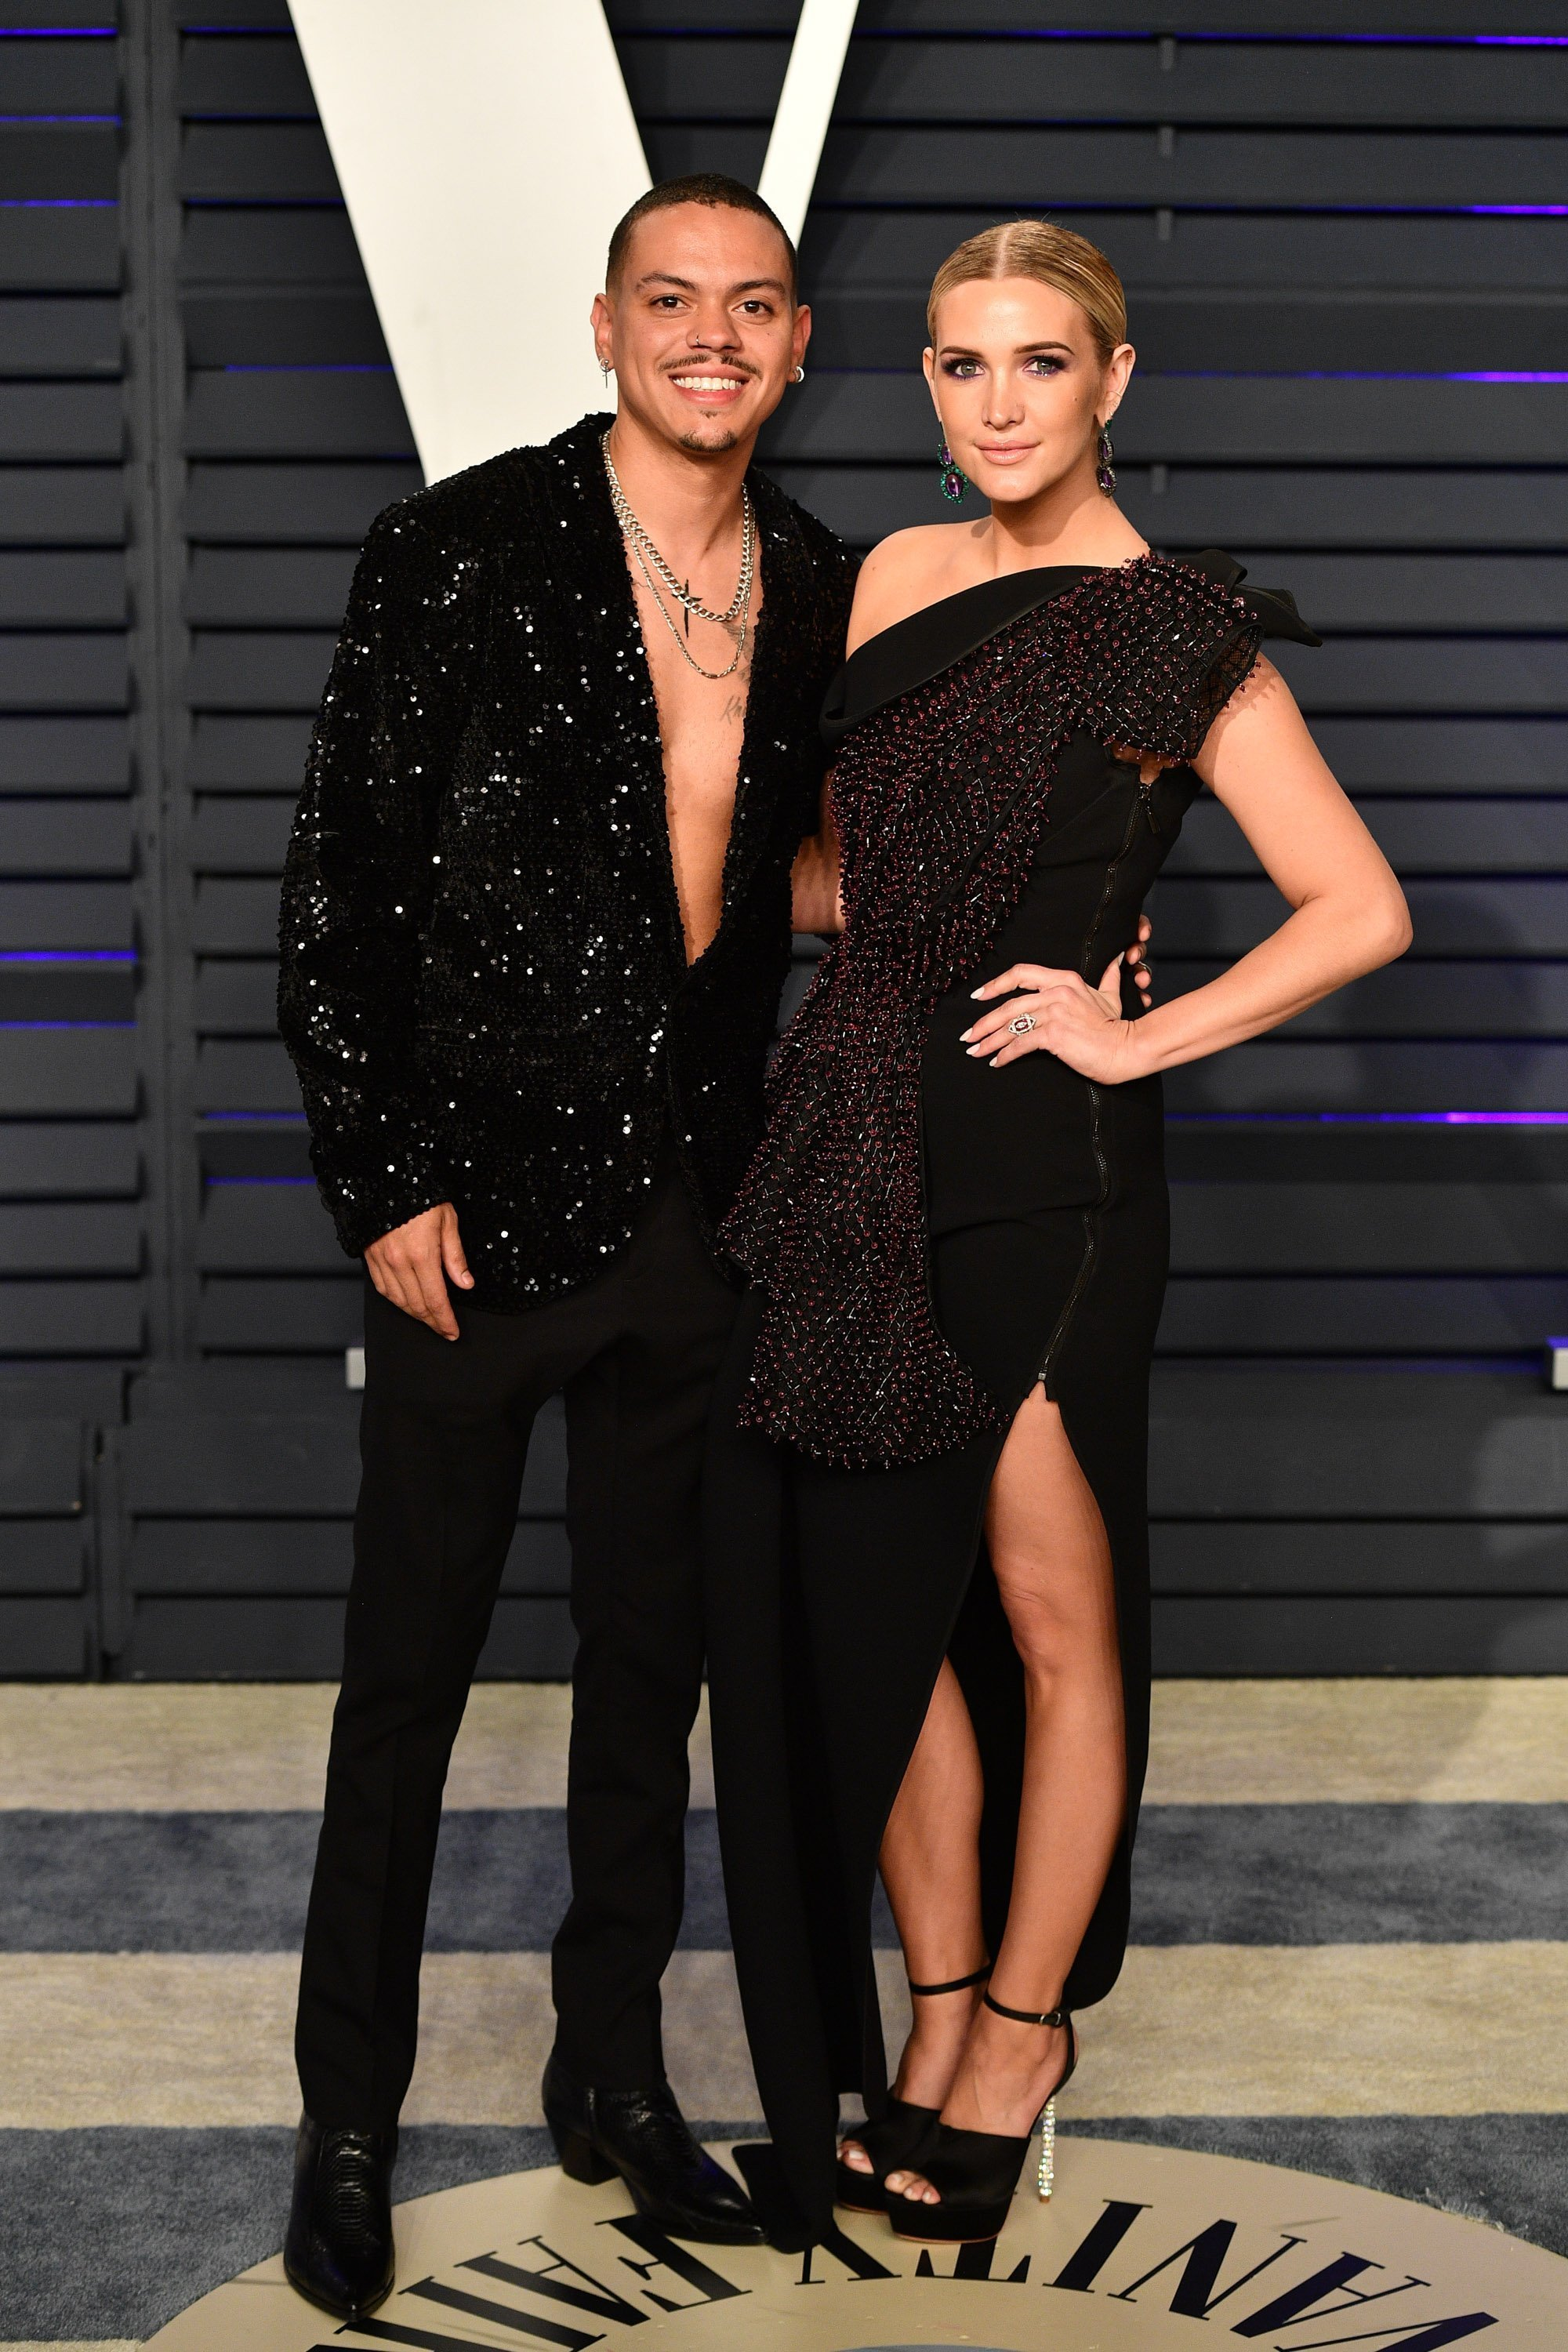 Evan Ross and Ashlee Simpson pose for the cameras at the 2019 Vanity Fair Oscar Party | Photo: Getty Images